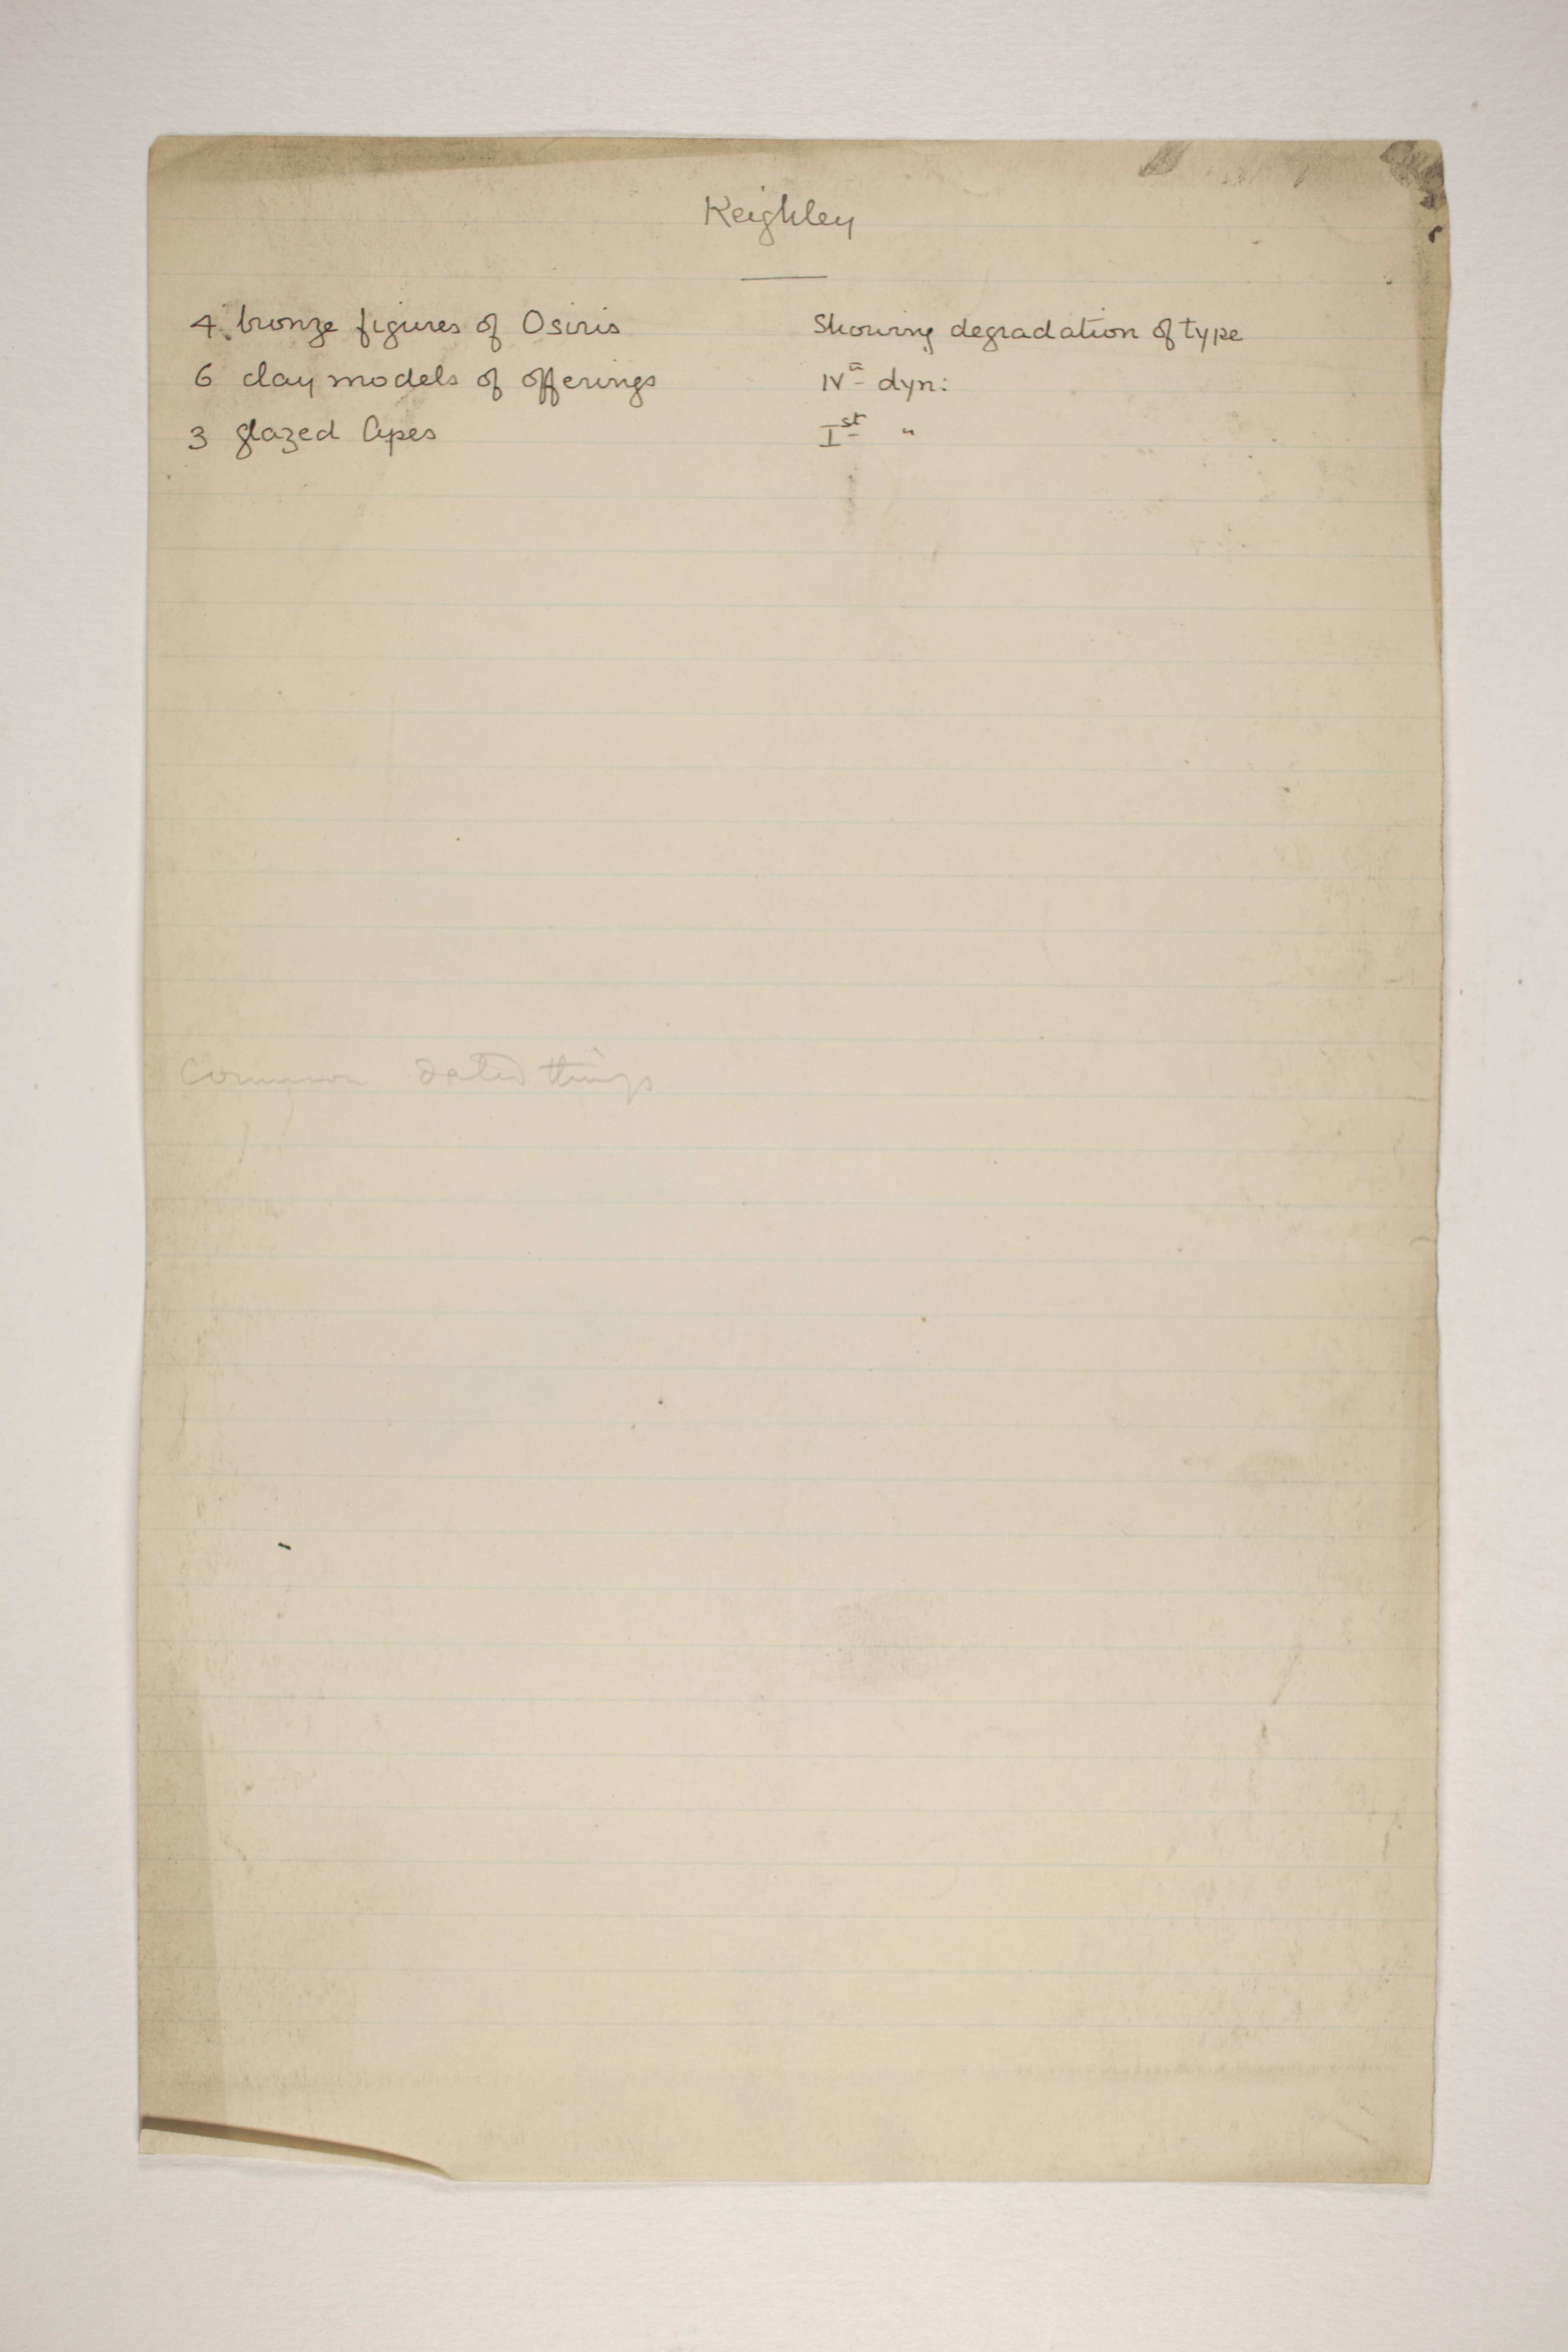 1902-03 Abydos Individual institution list  PMA/WFP1/D/11/34